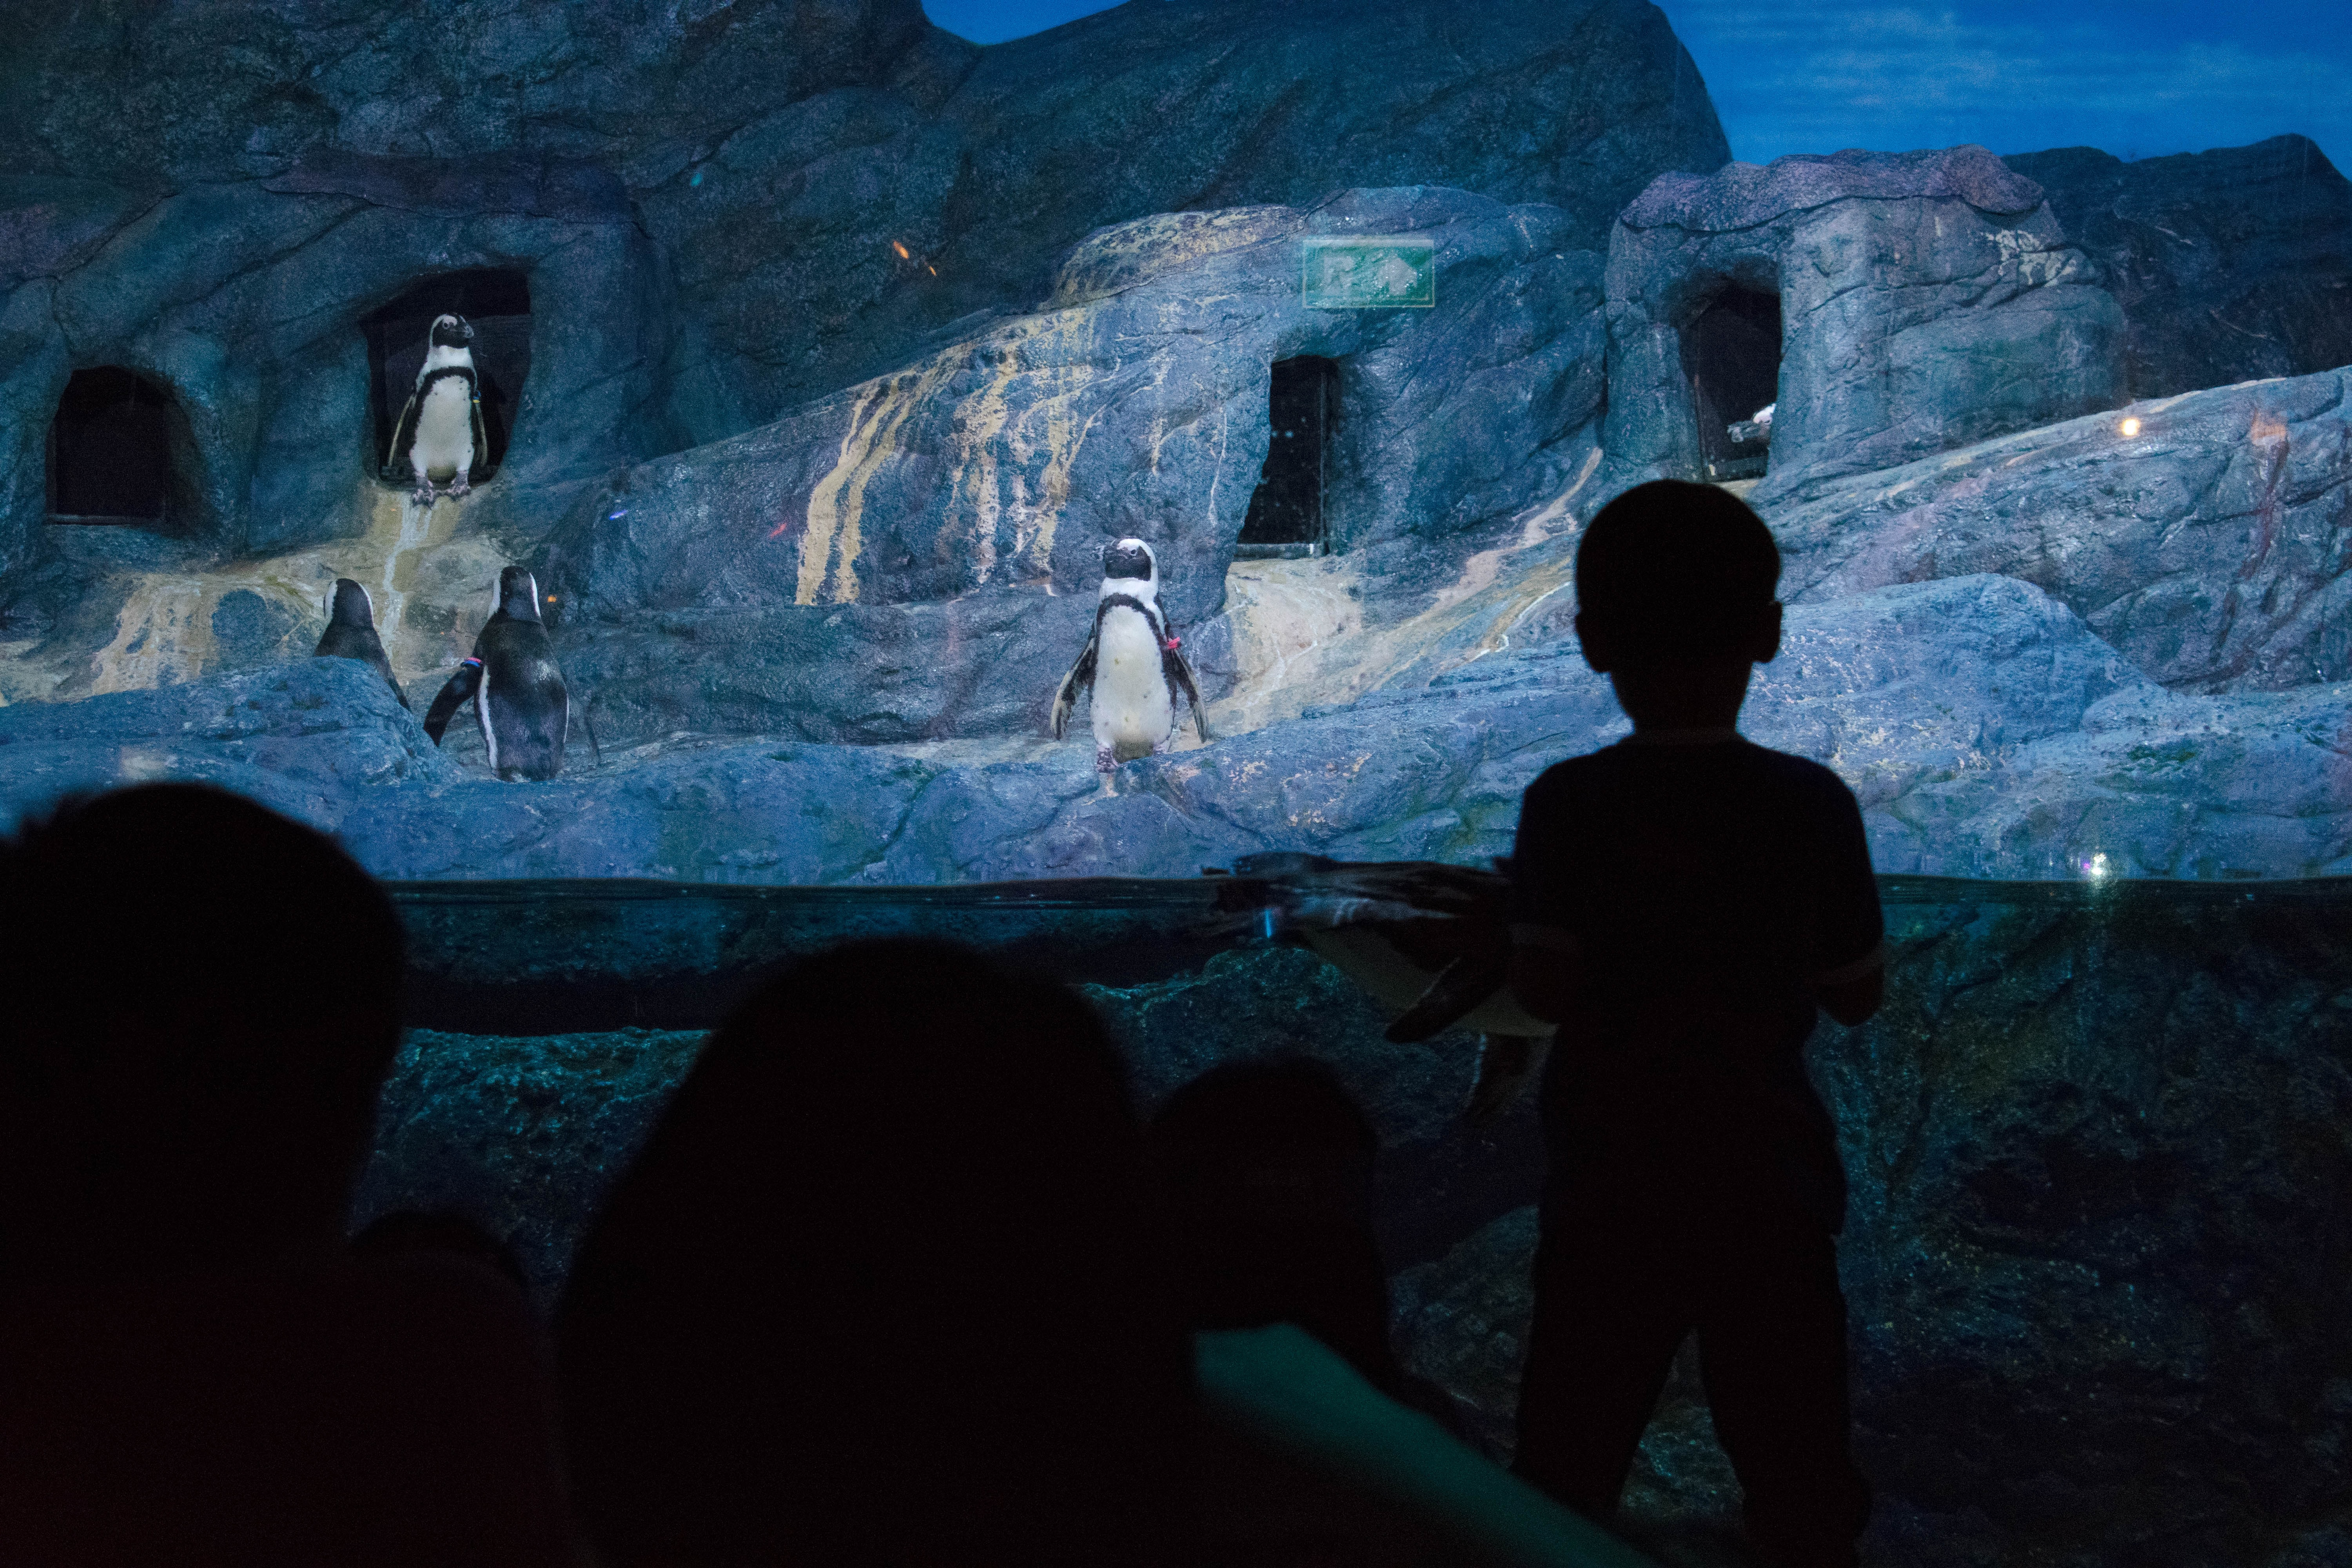 silhouette photo of child watching penguins